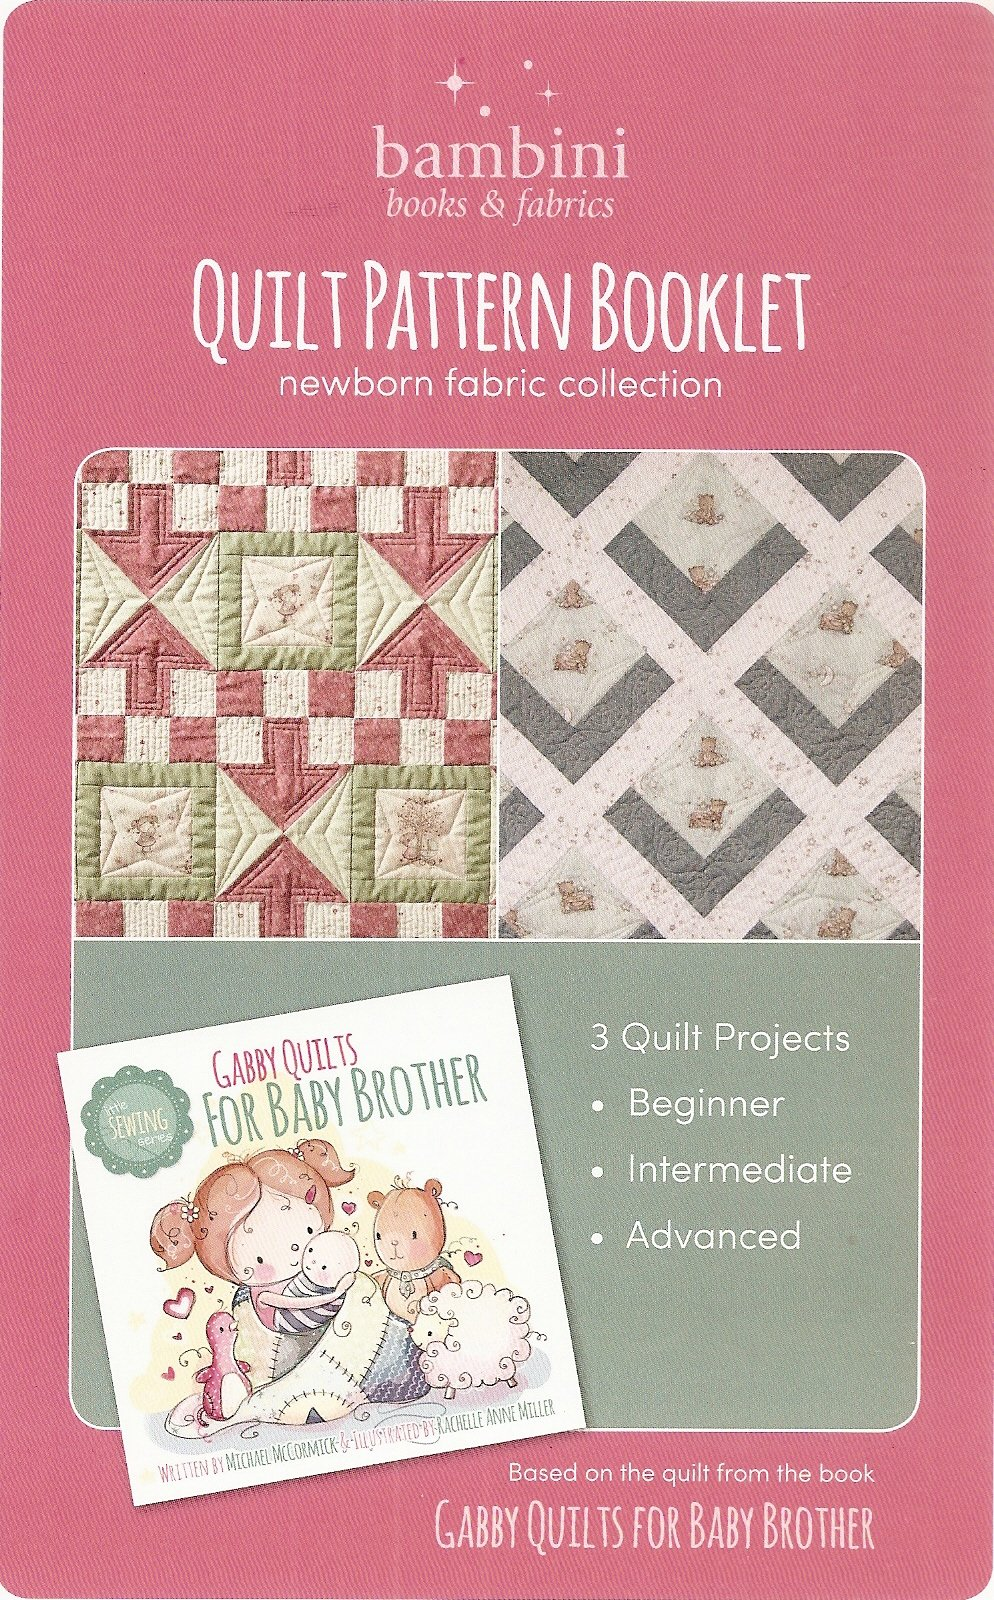 Gabby Quilts Quilt Pattern Booklet 860332000396